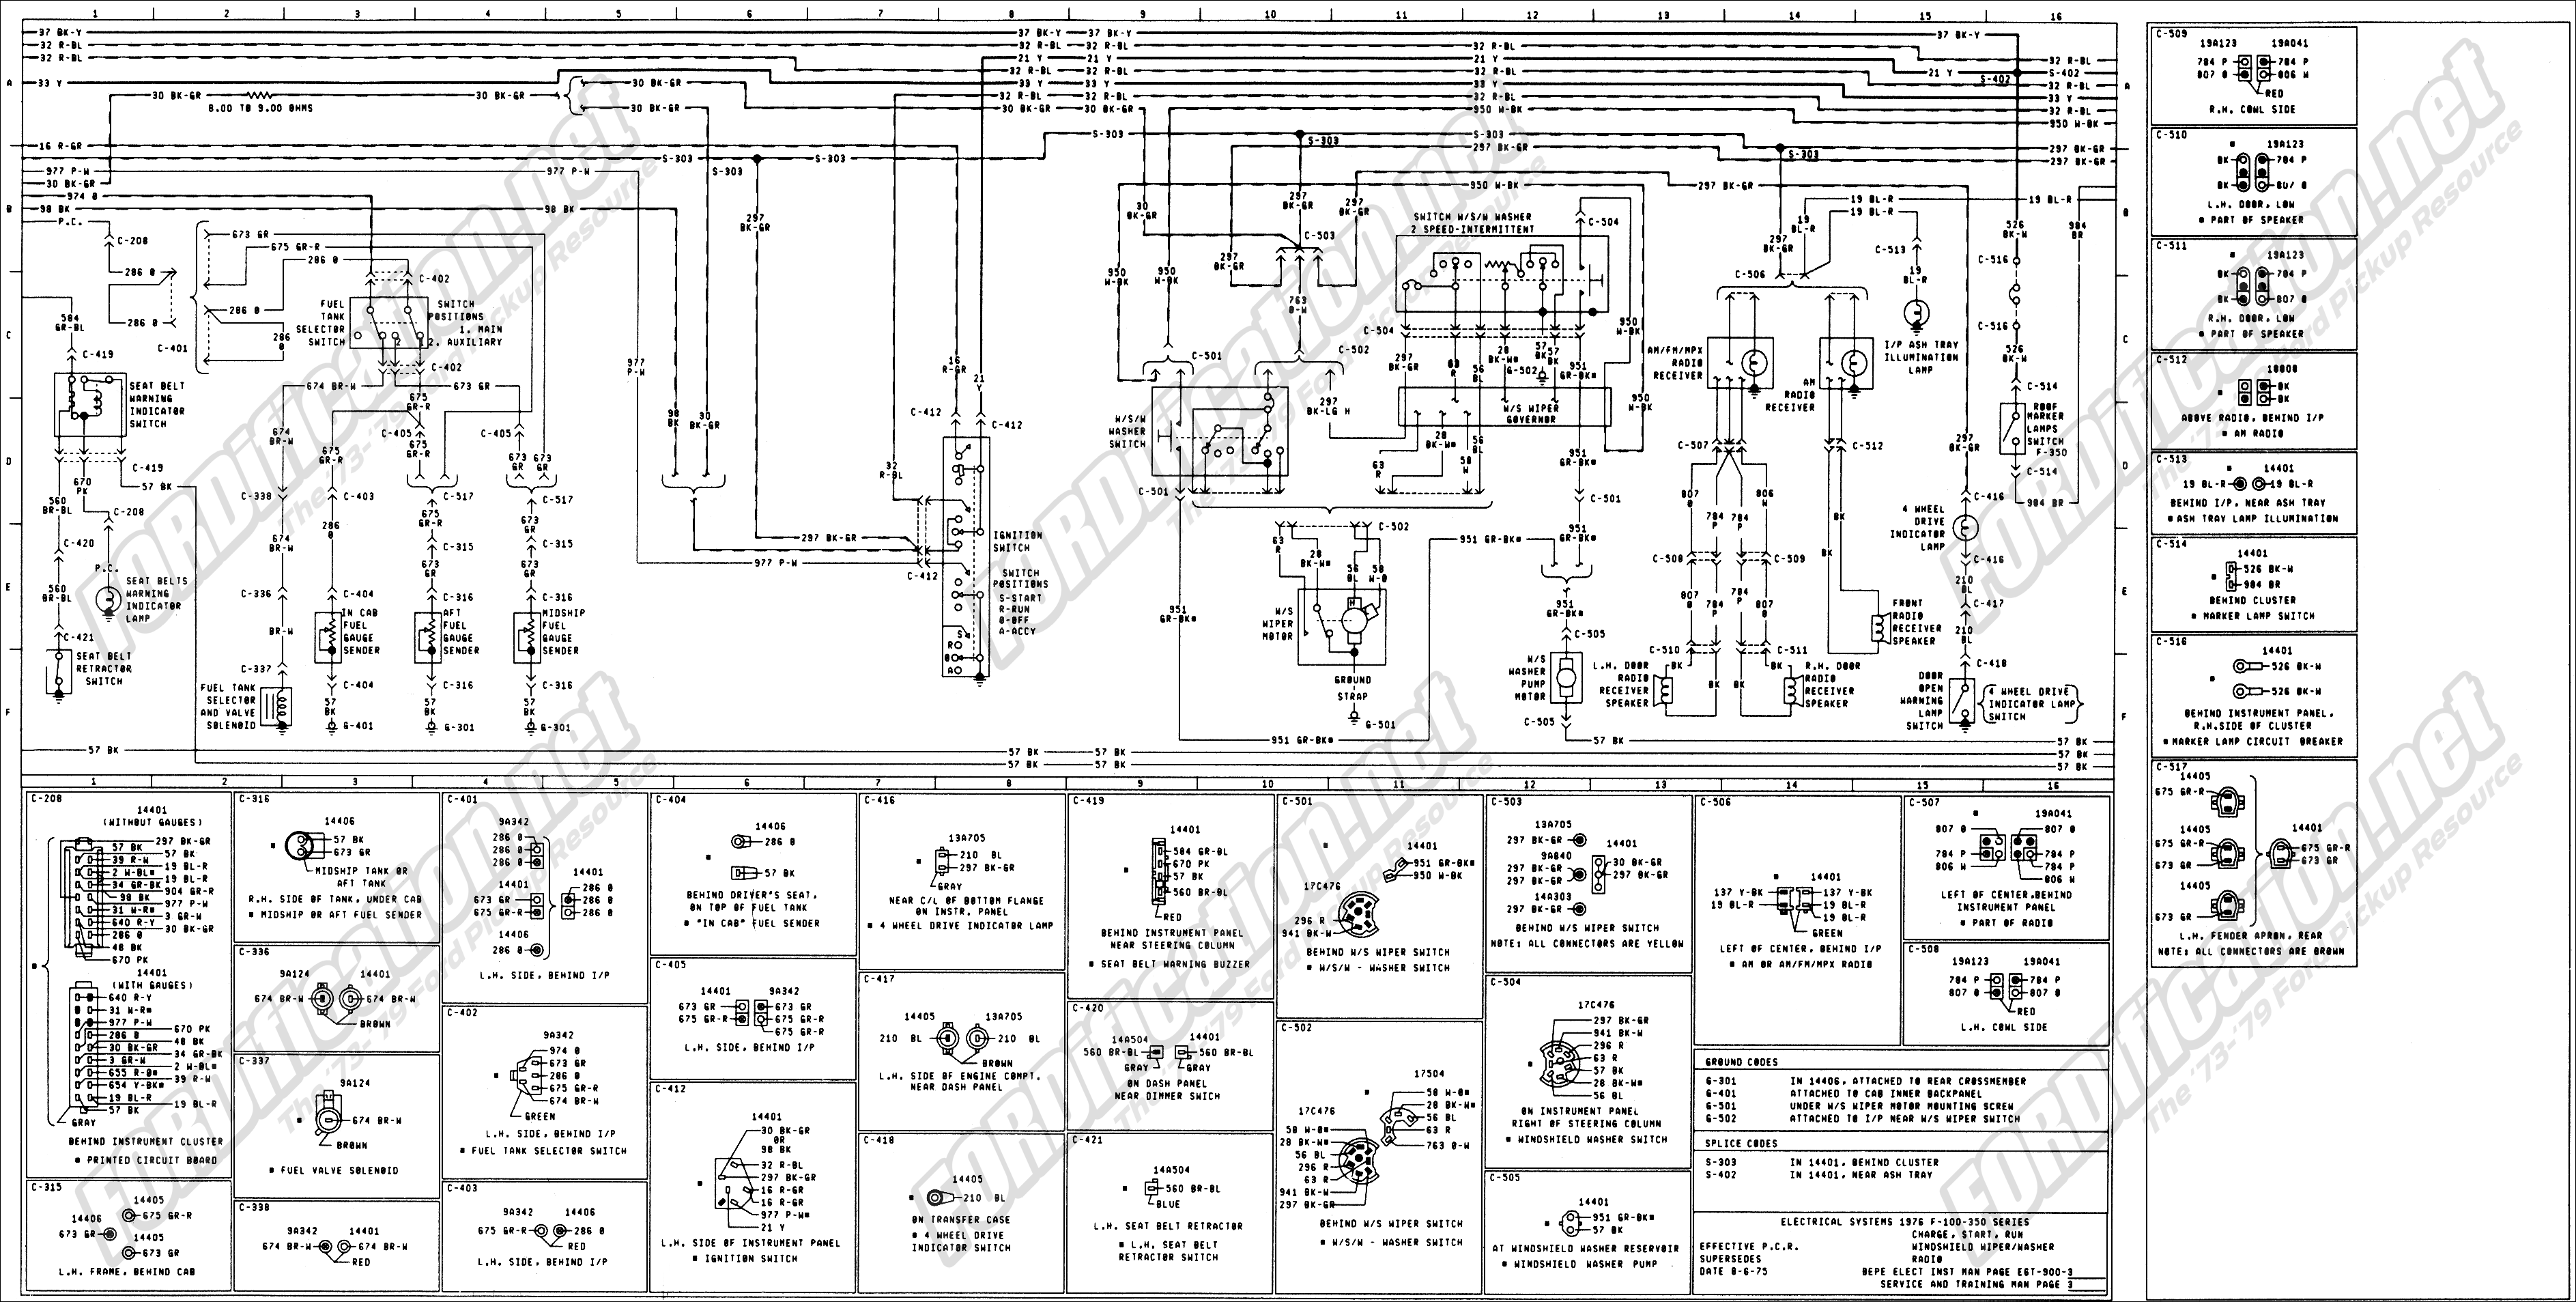 wiring_76master_3of9 1973 1979 ford truck wiring diagrams & schematics fordification net 2003 ford f250 ignition switch wiring diagram at bayanpartner.co